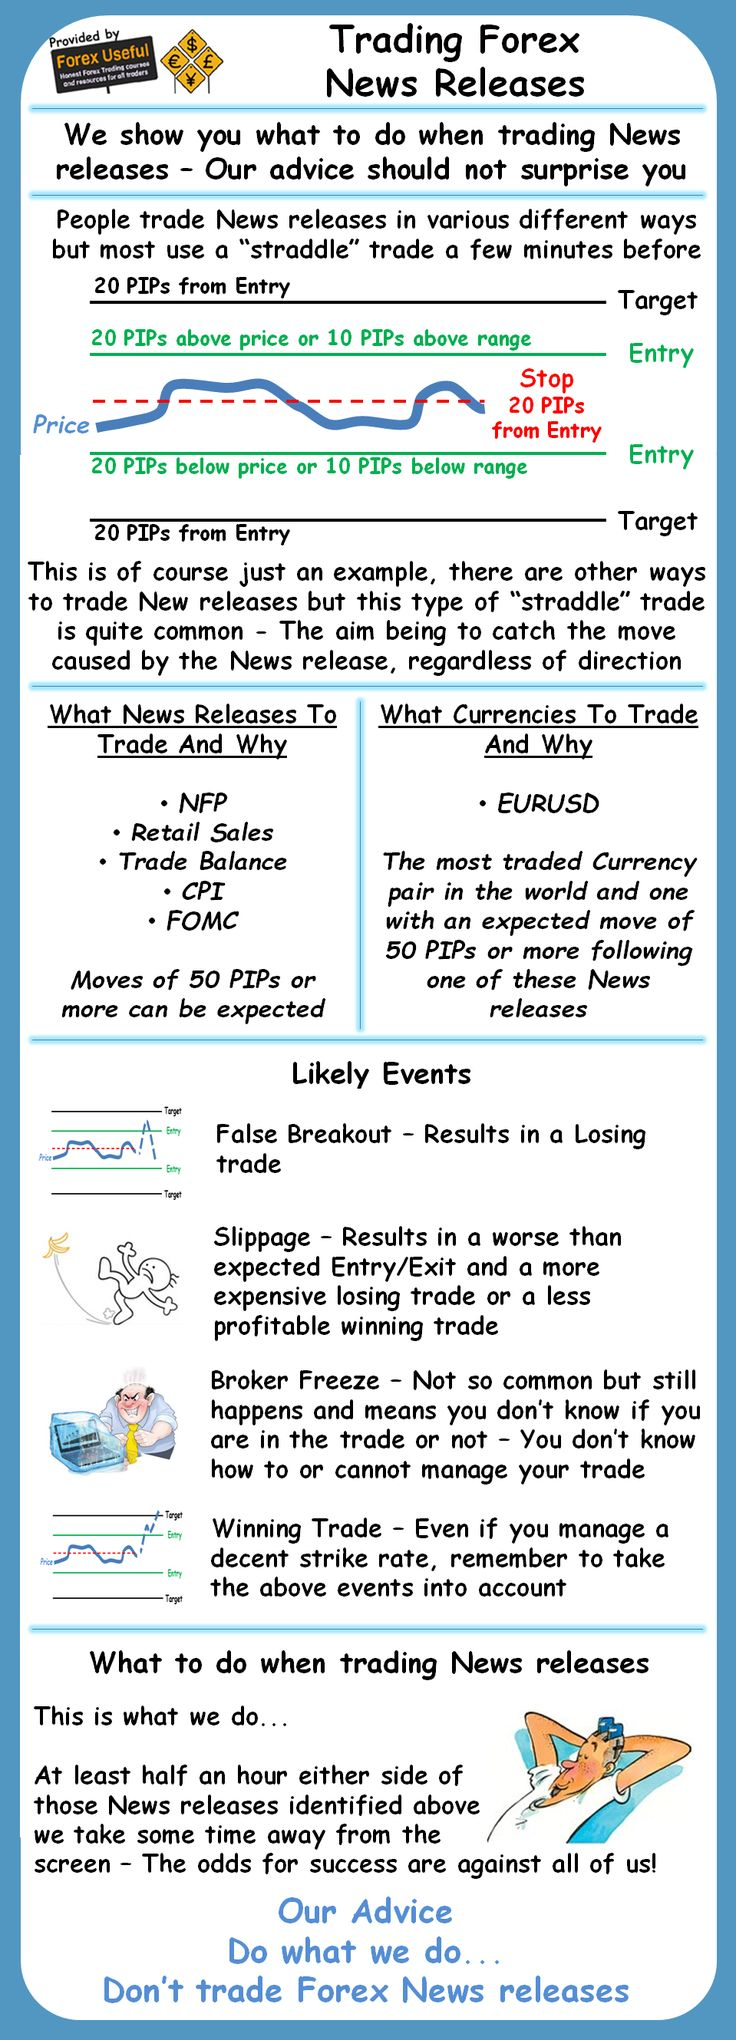 Forex news releases